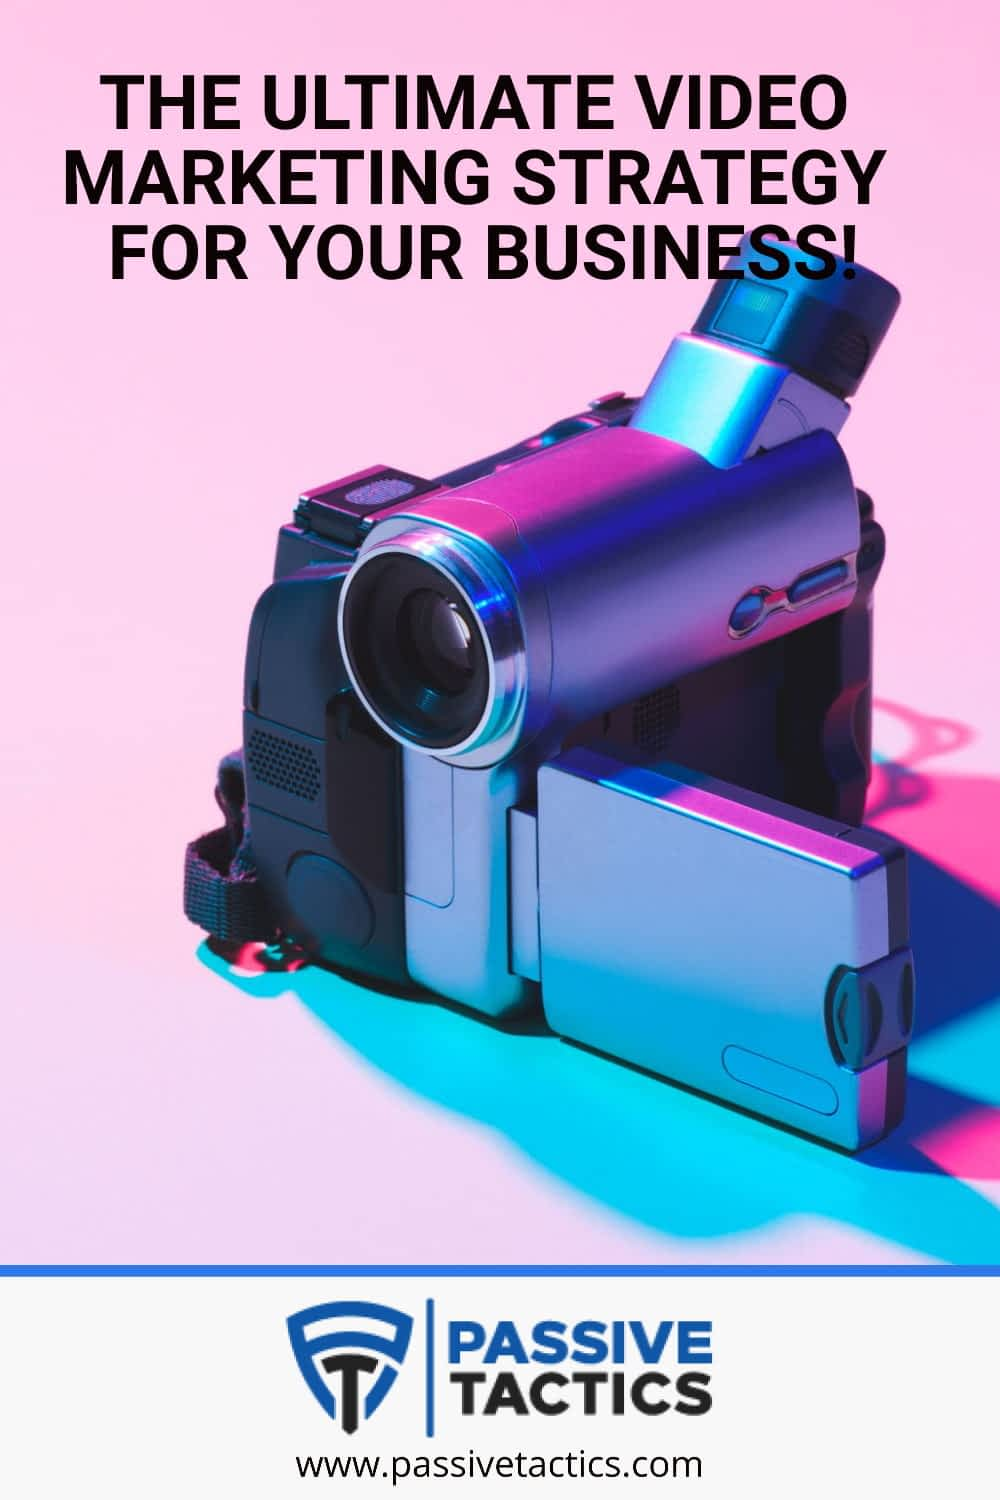 The Ultimate Video Marketing Strategy For Your Business!